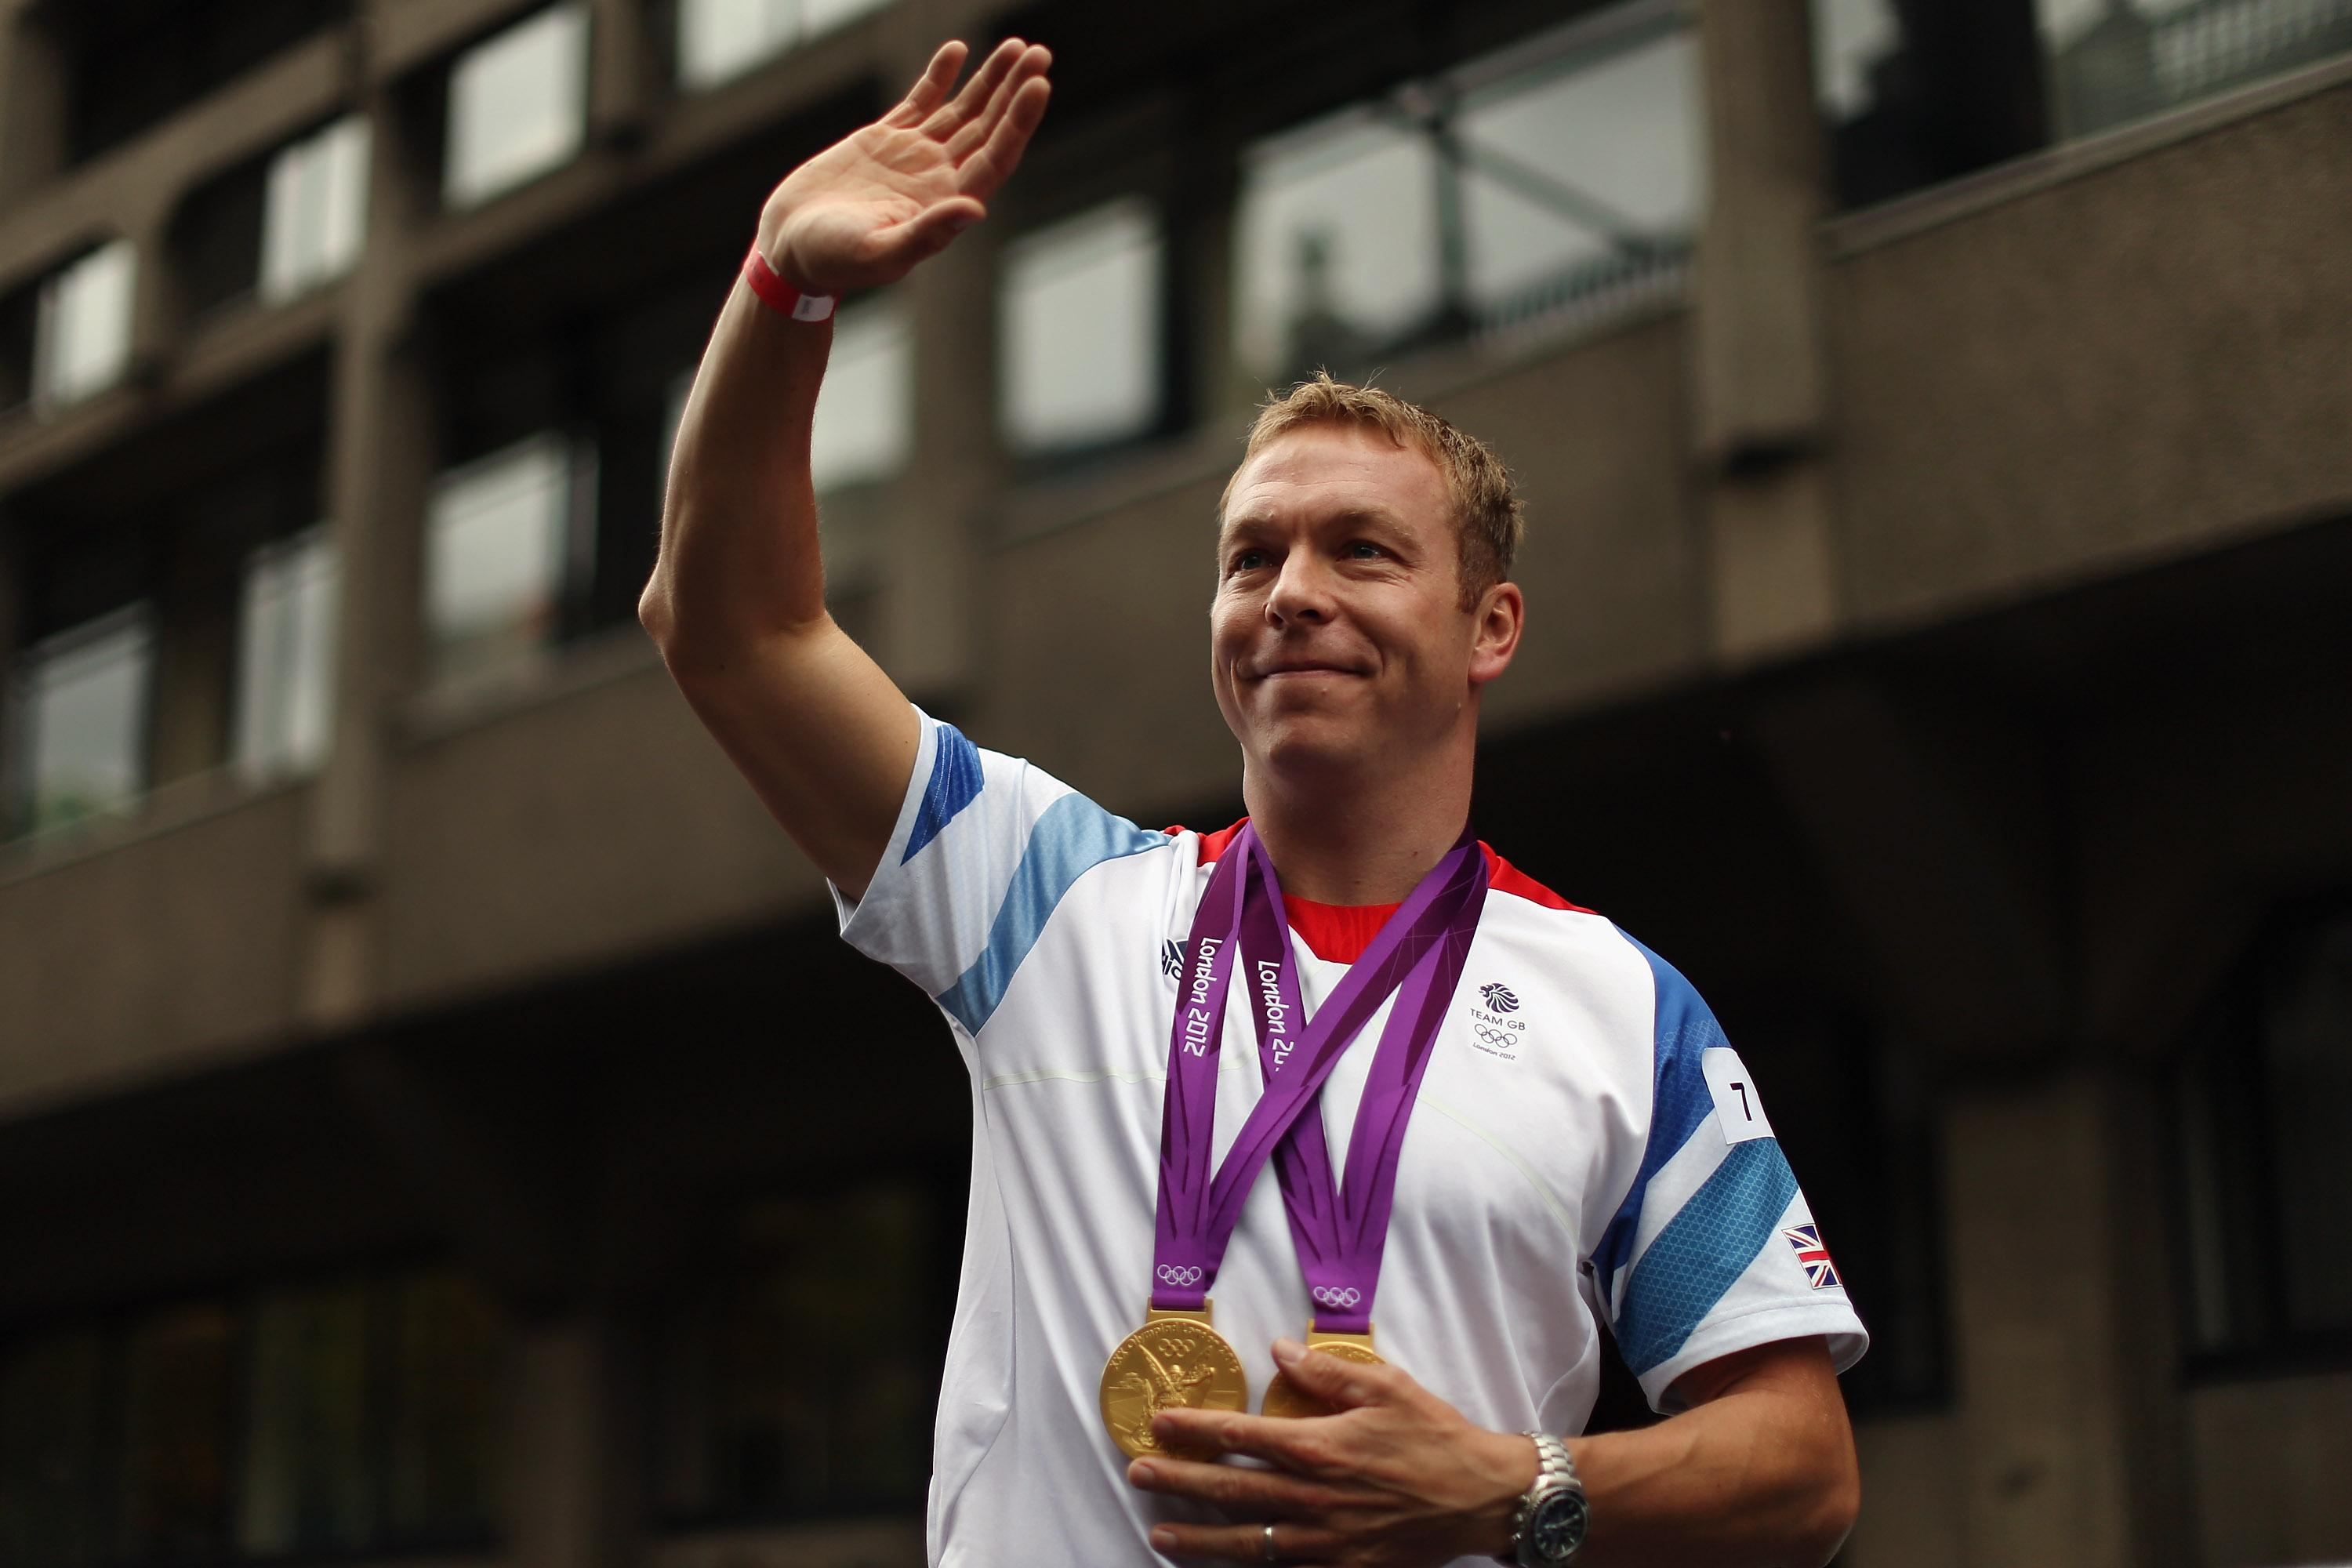 Sir Chris Hoy won seven Olympic medals including two golds in London